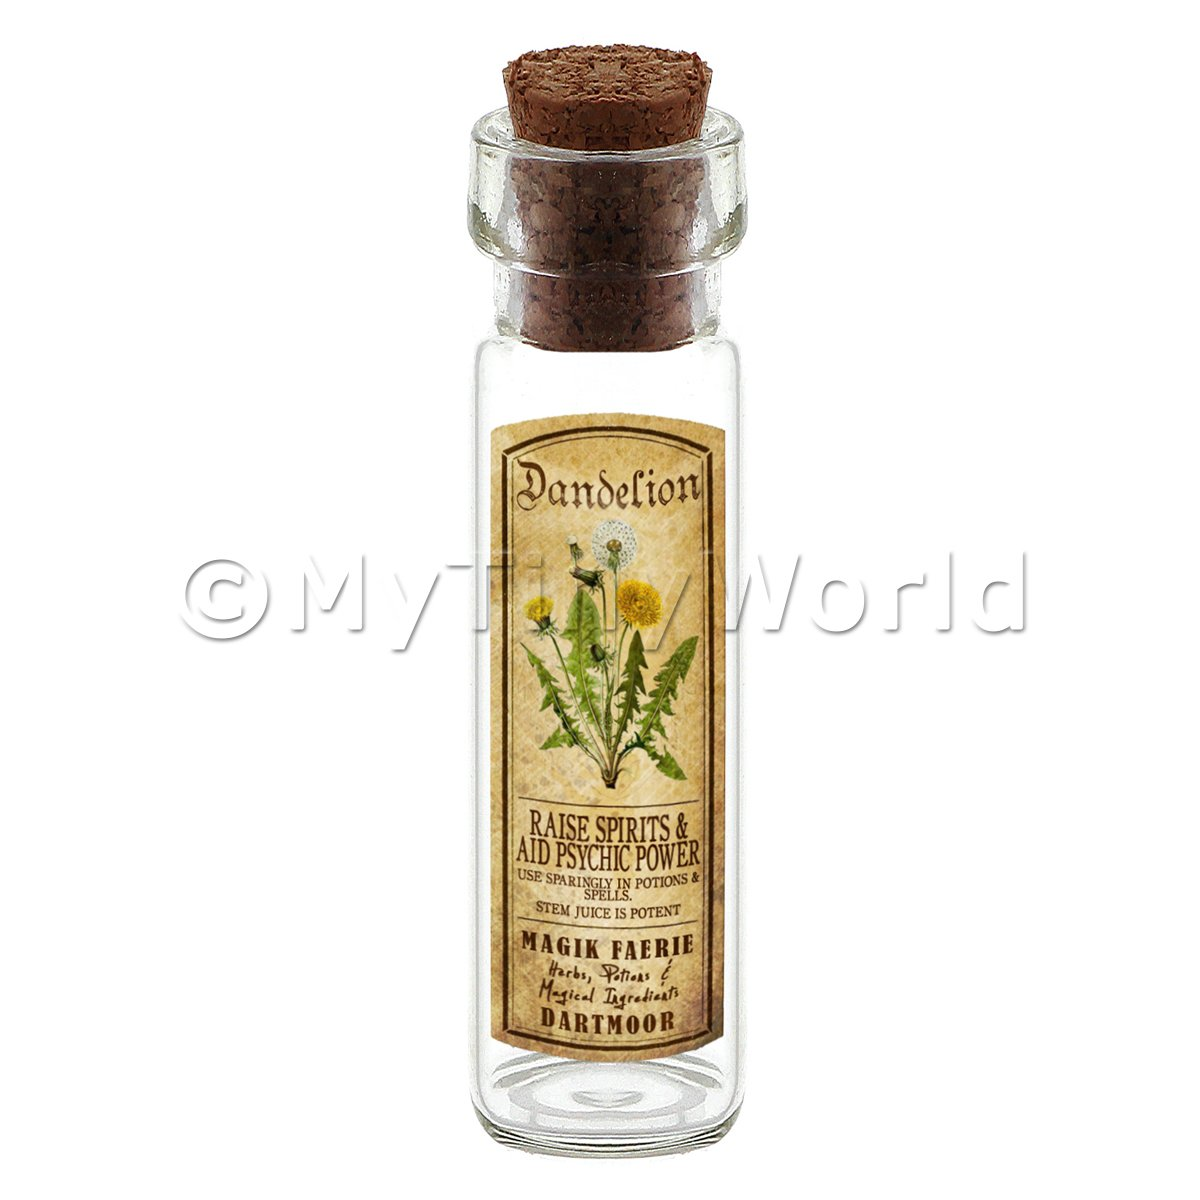 Dolls House Apothecary Dandelion Herb Long Colour Label And Bottle